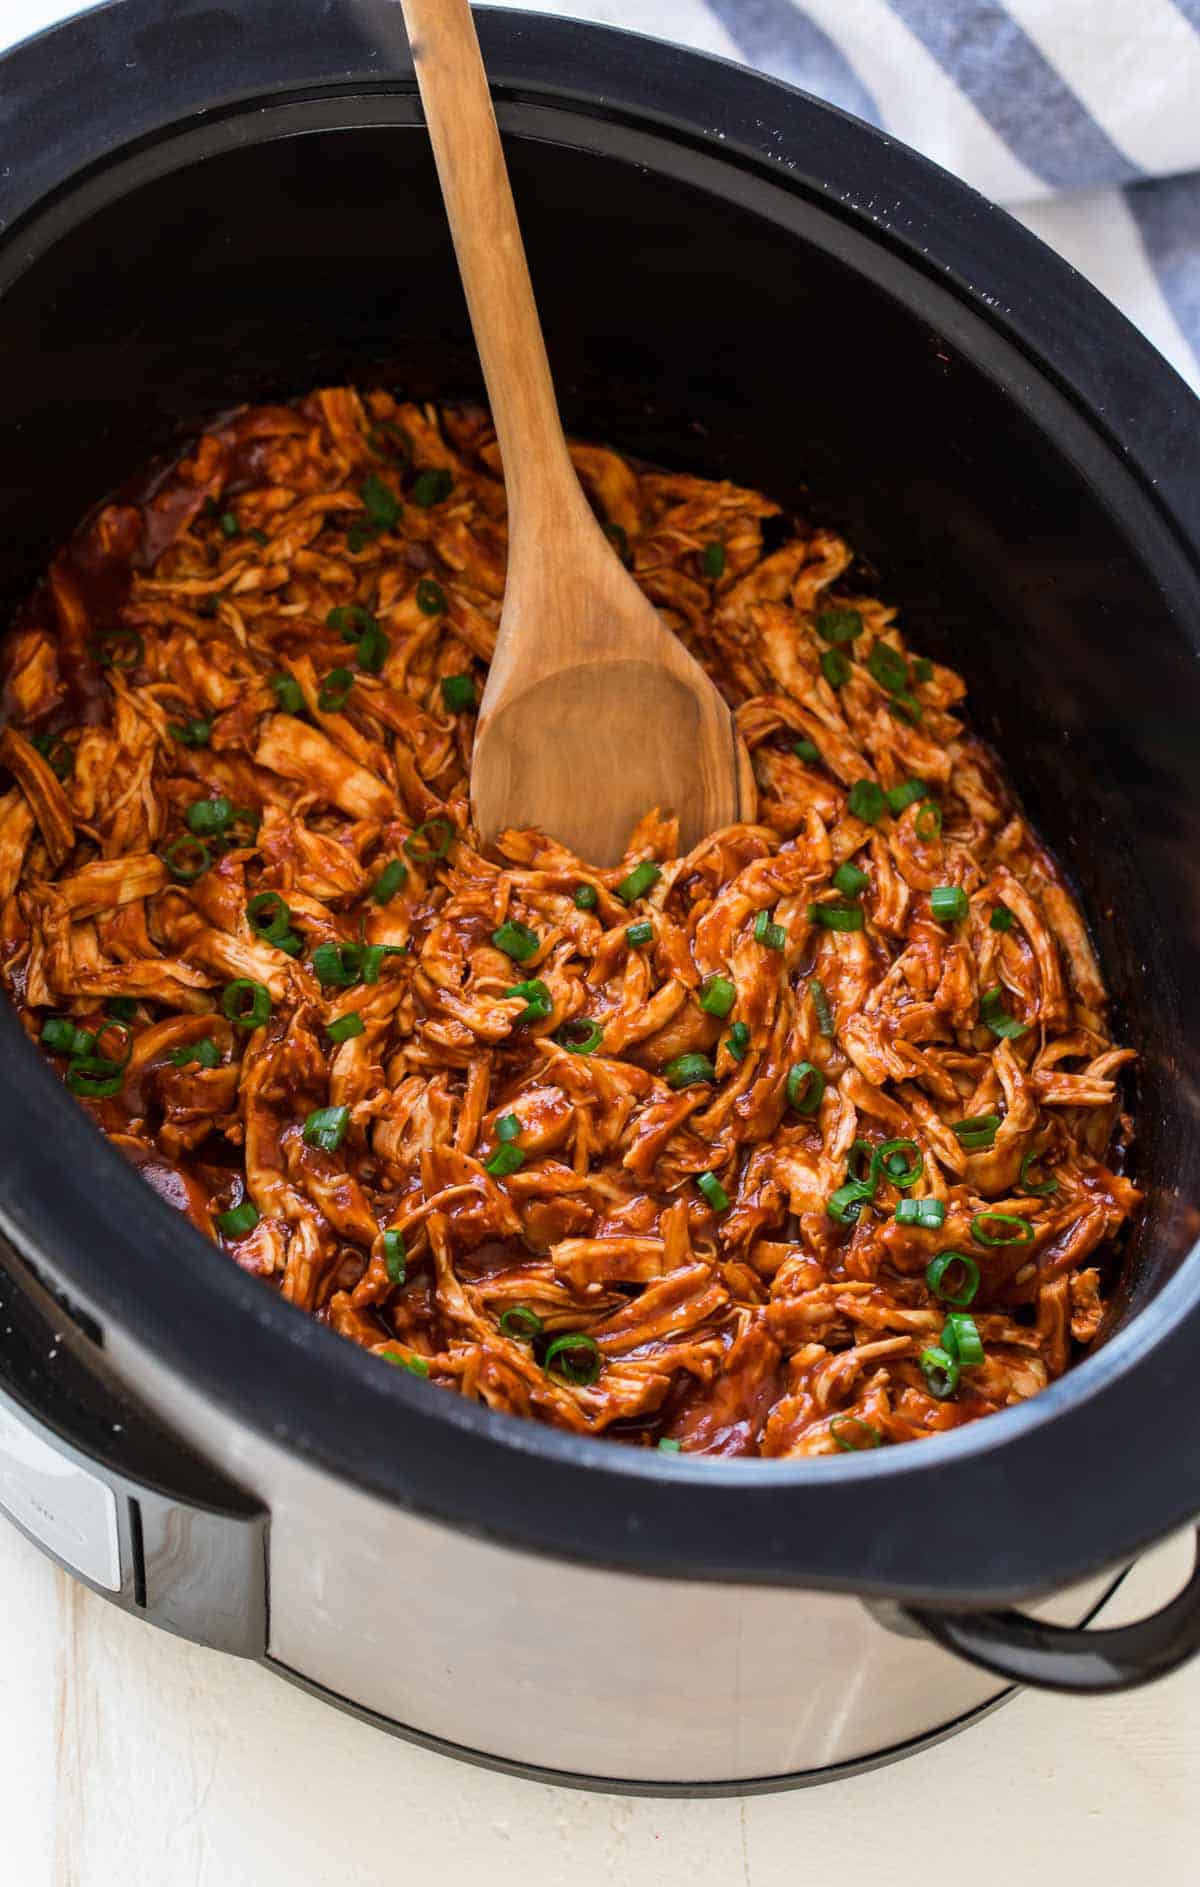 Bbq chicken in a slow cooker with green onions